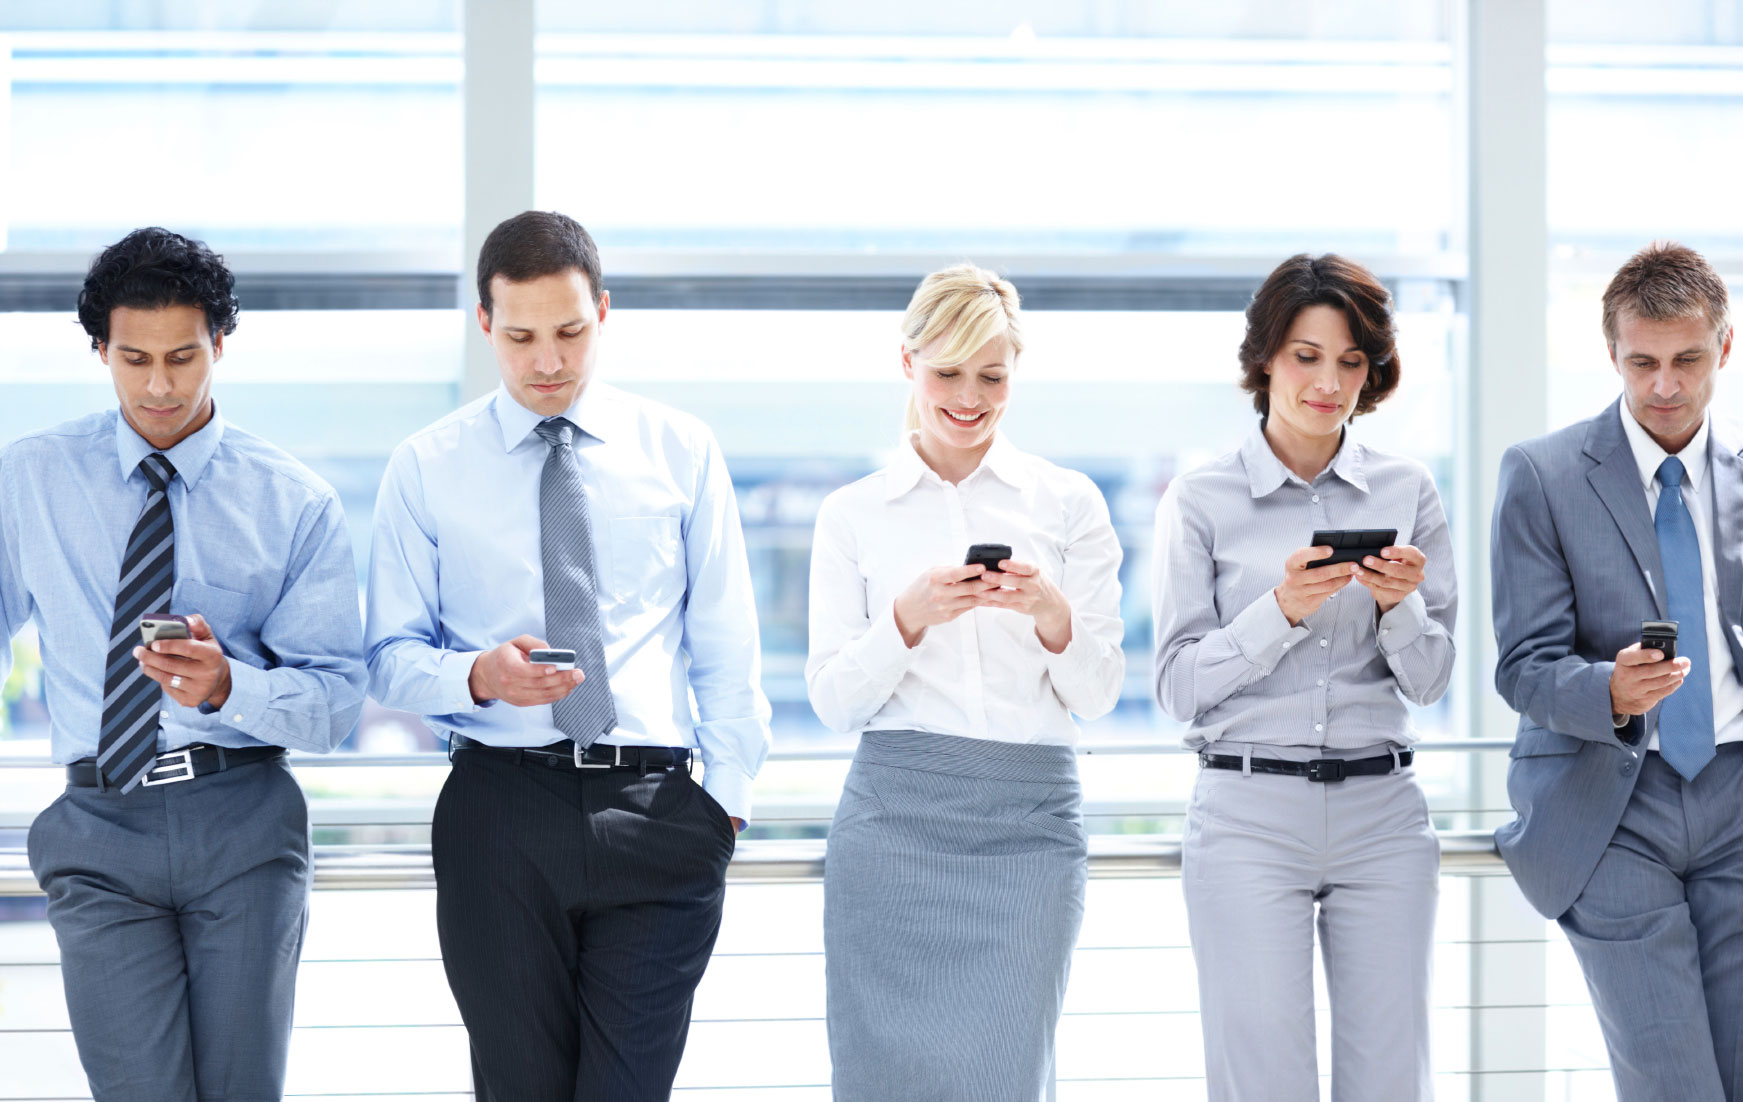 Choose our phone repair service and keep all your employees happy and productive